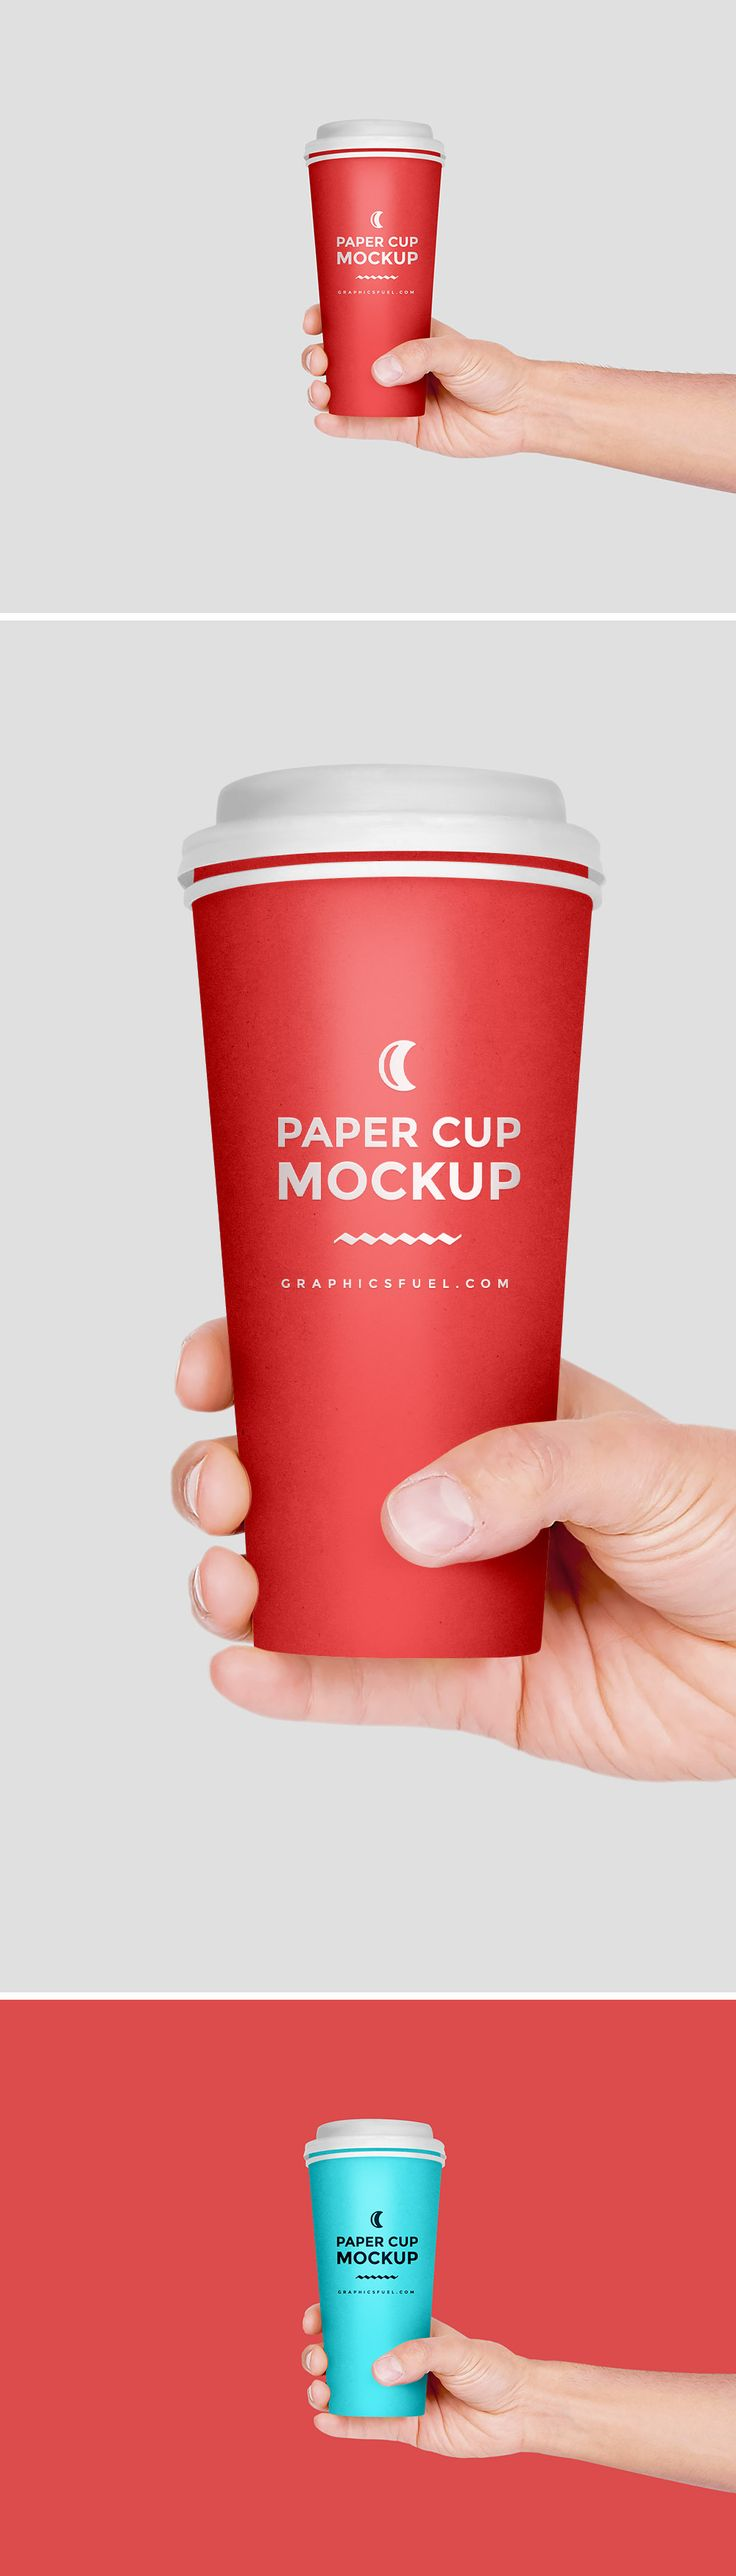 Free Paper Cup In Hand Mockup PSD (6.16 MB) | Graohics Fuel | #free #photoshop #mockup #psd #paper #cup #hand